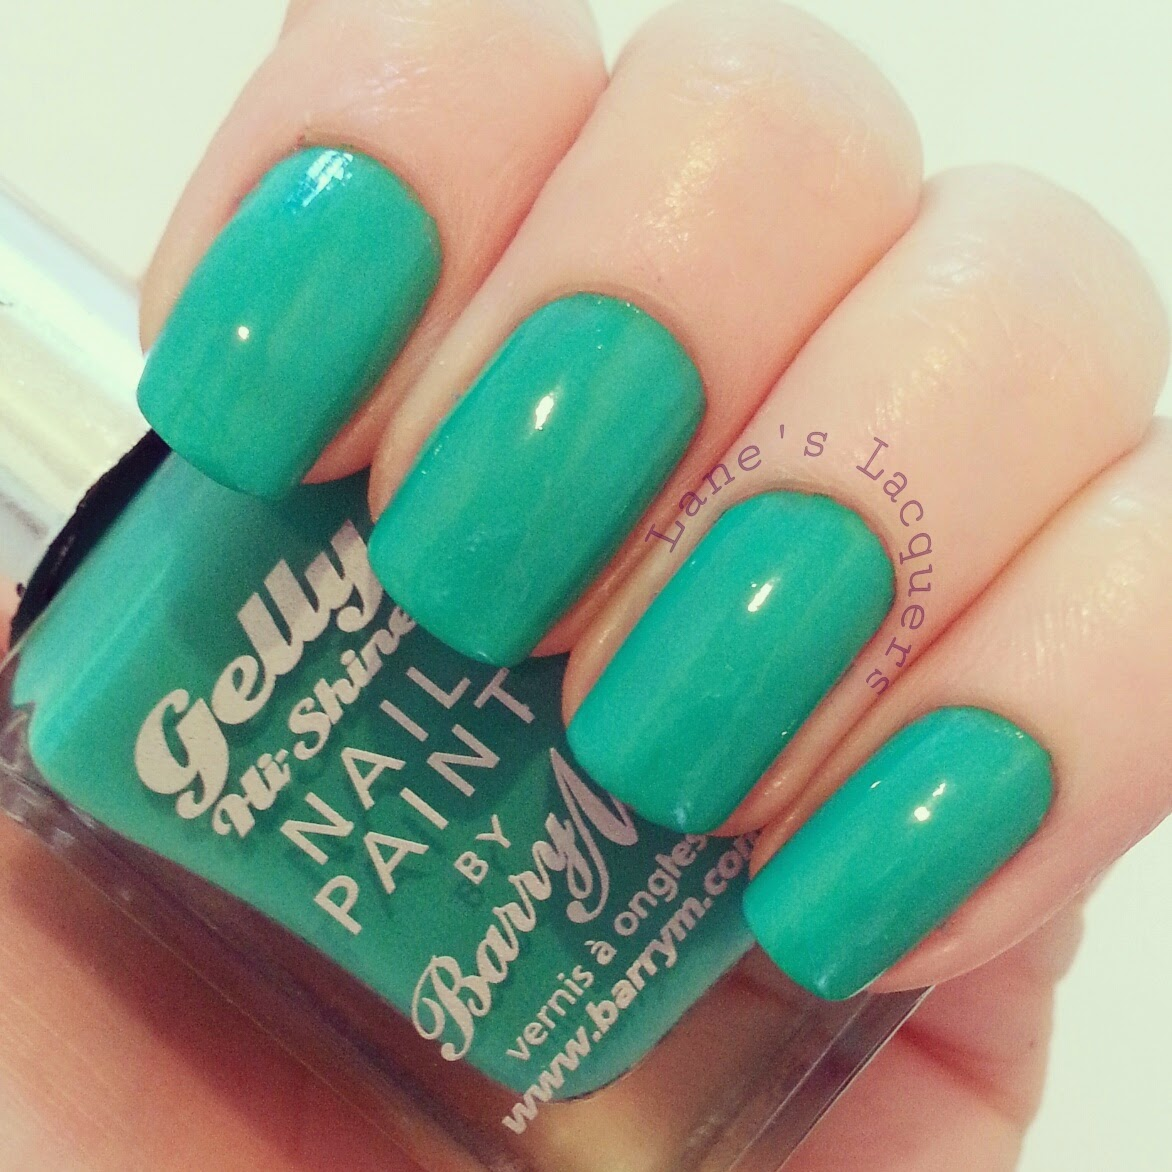 barry-m-summer-gelly-kiwi-swatch-nails